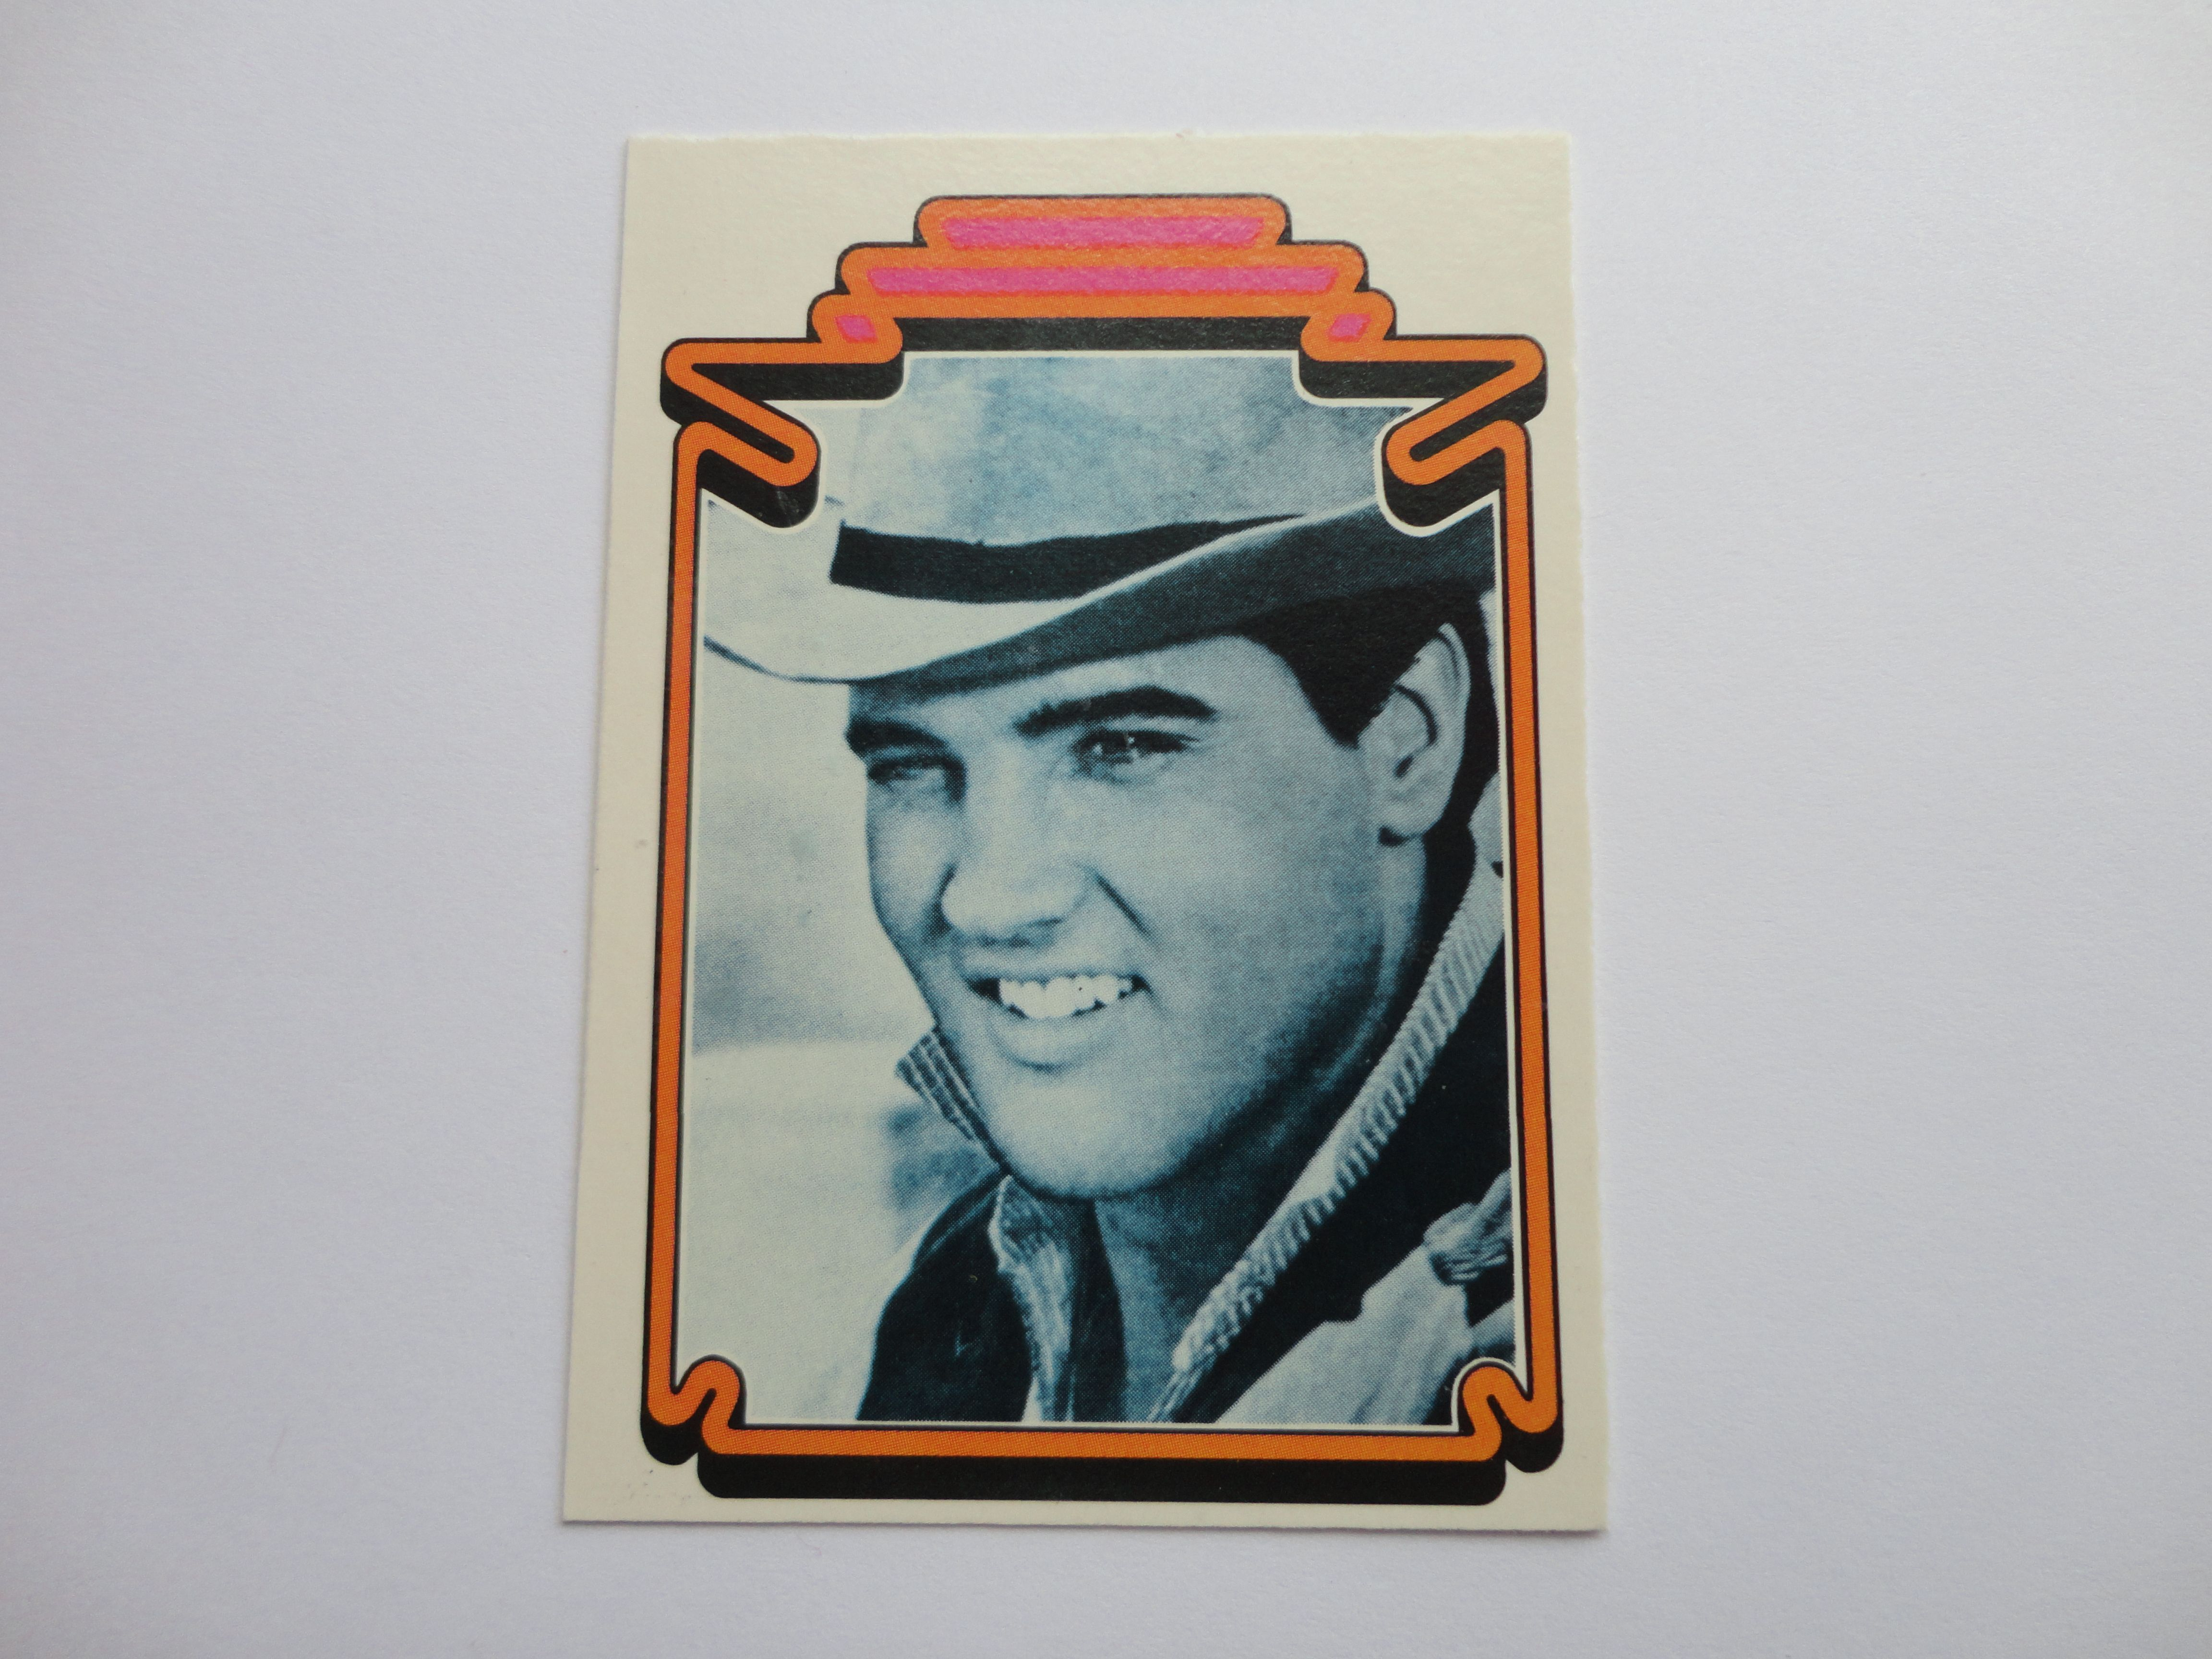 #31 of 66 Elvis Presley Facts Card Collection